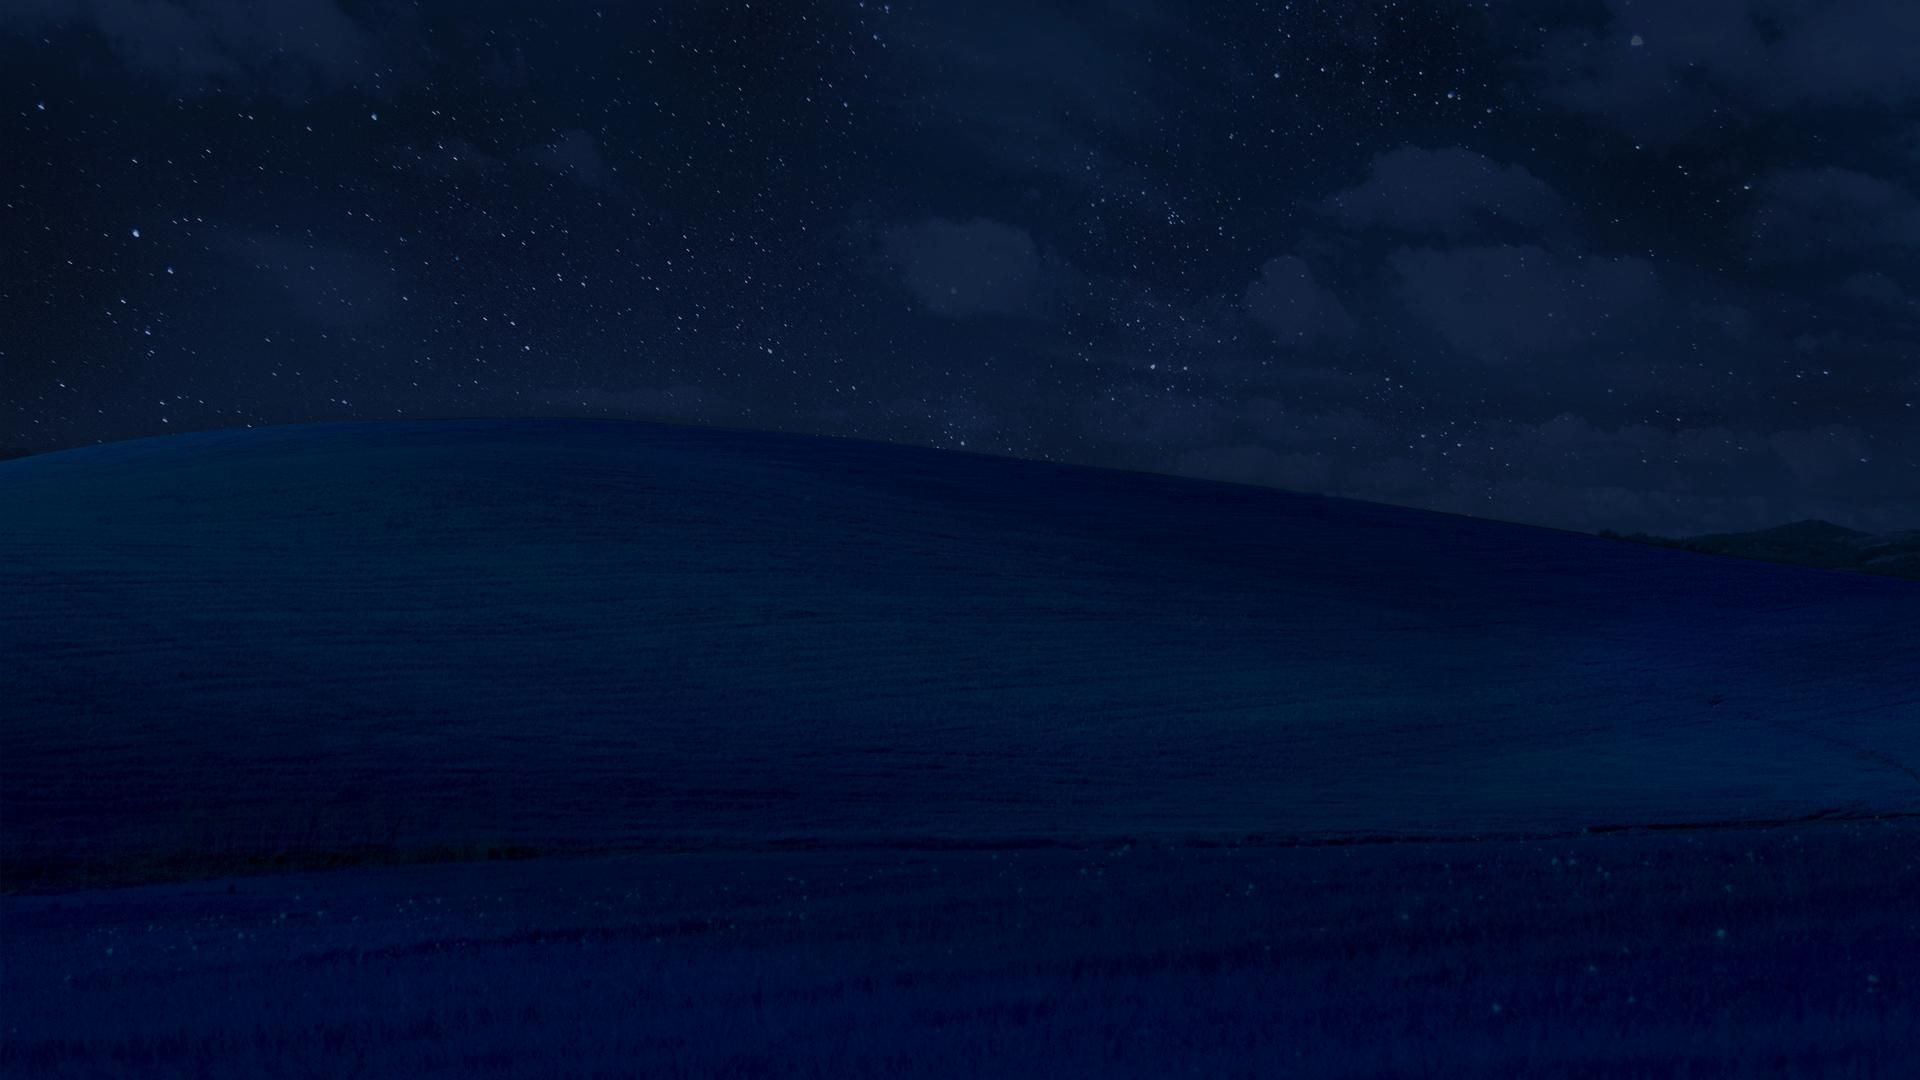 1920x1080 Windows Xp Default Bliss Night Mode Hd